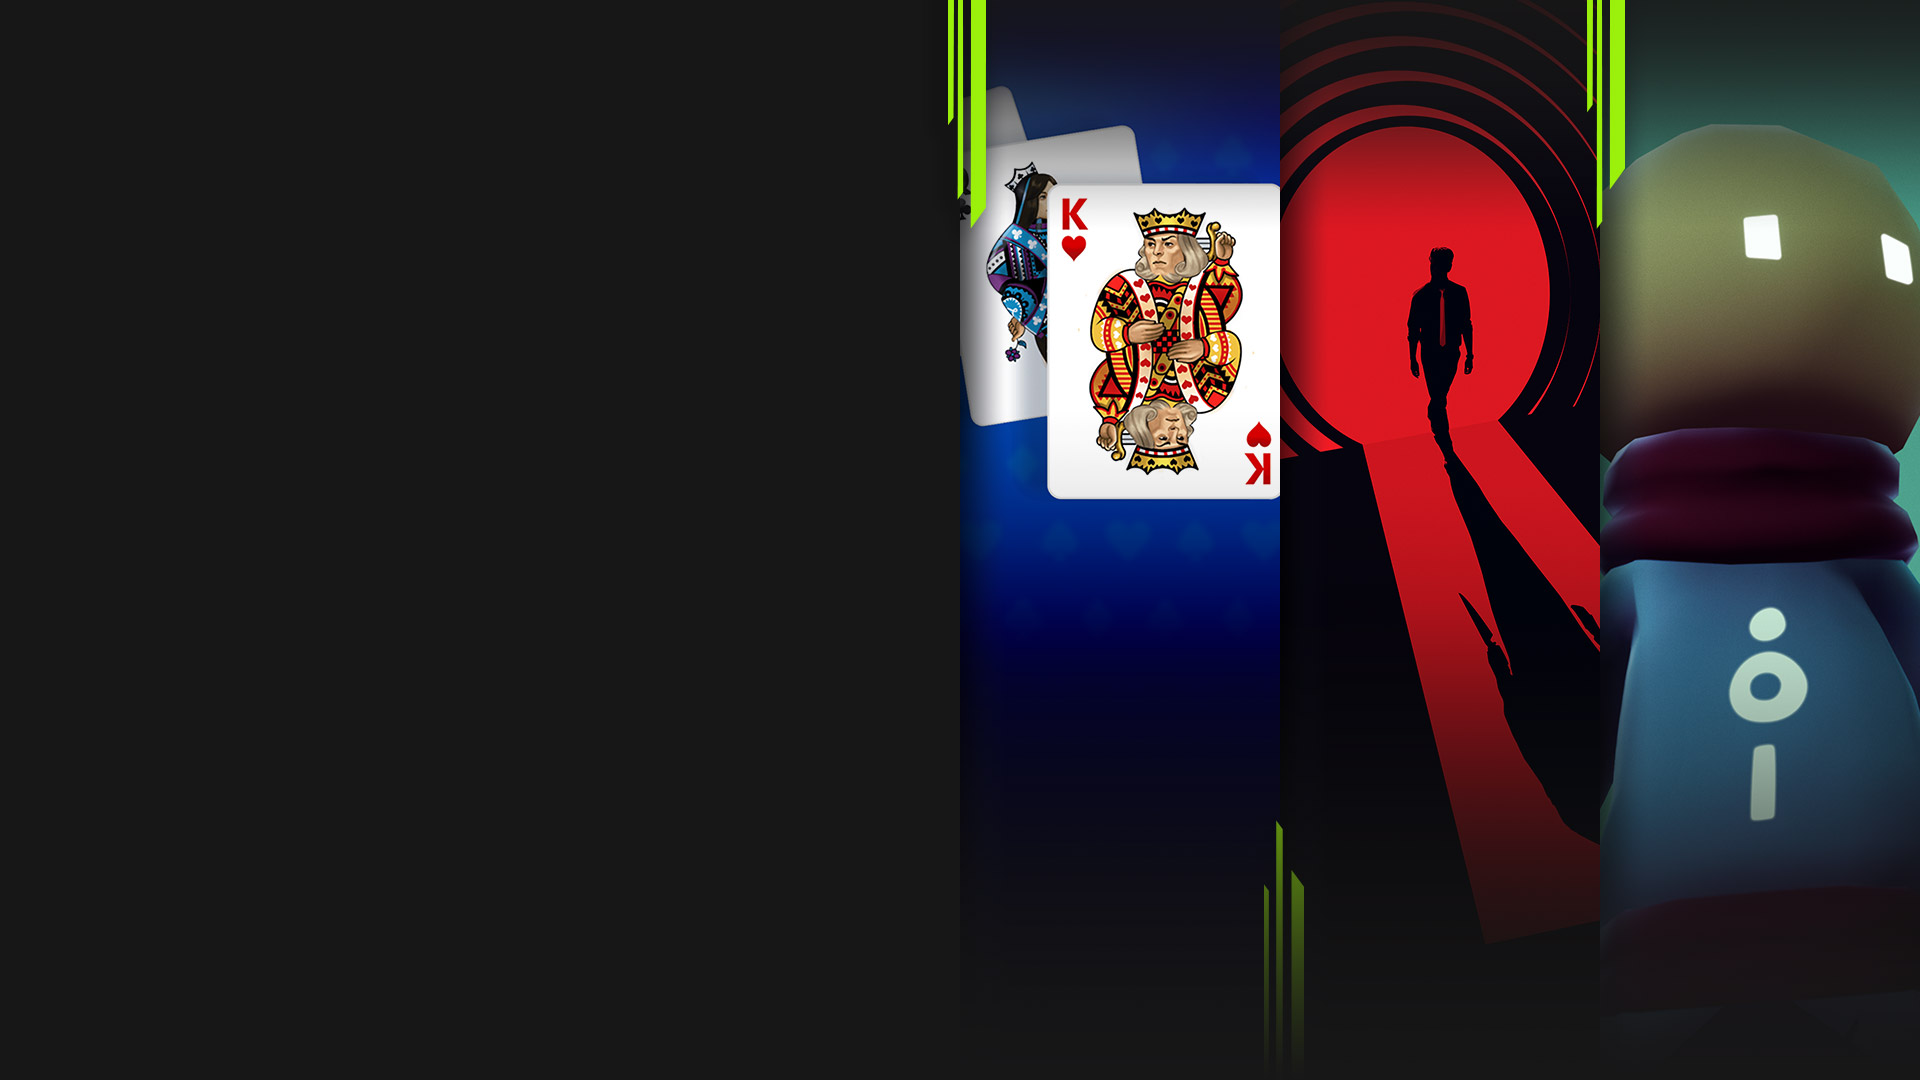 Game art from multiple Xbox Game Pass games available on PC including Microsoft Solitaire Collection, Twelve Minutes, Omno, and Hades.